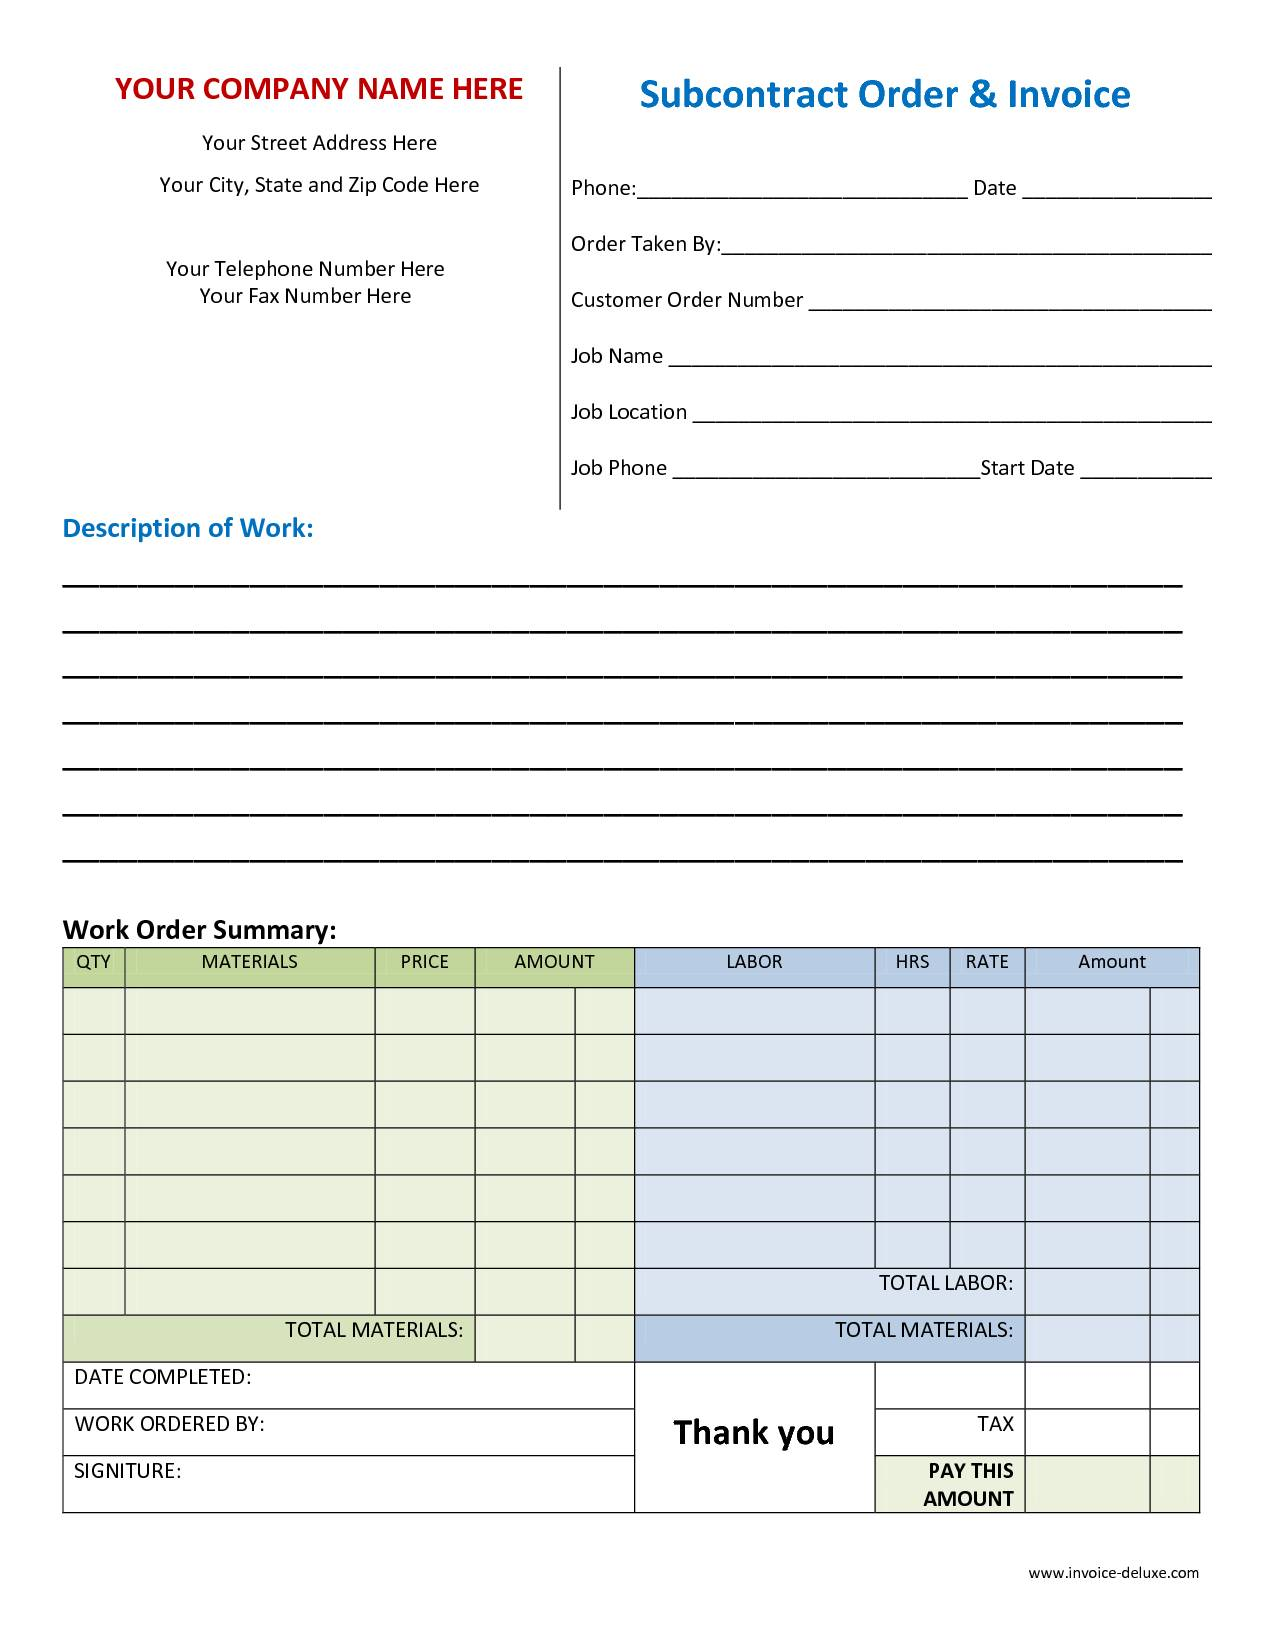 Labor Contract Example